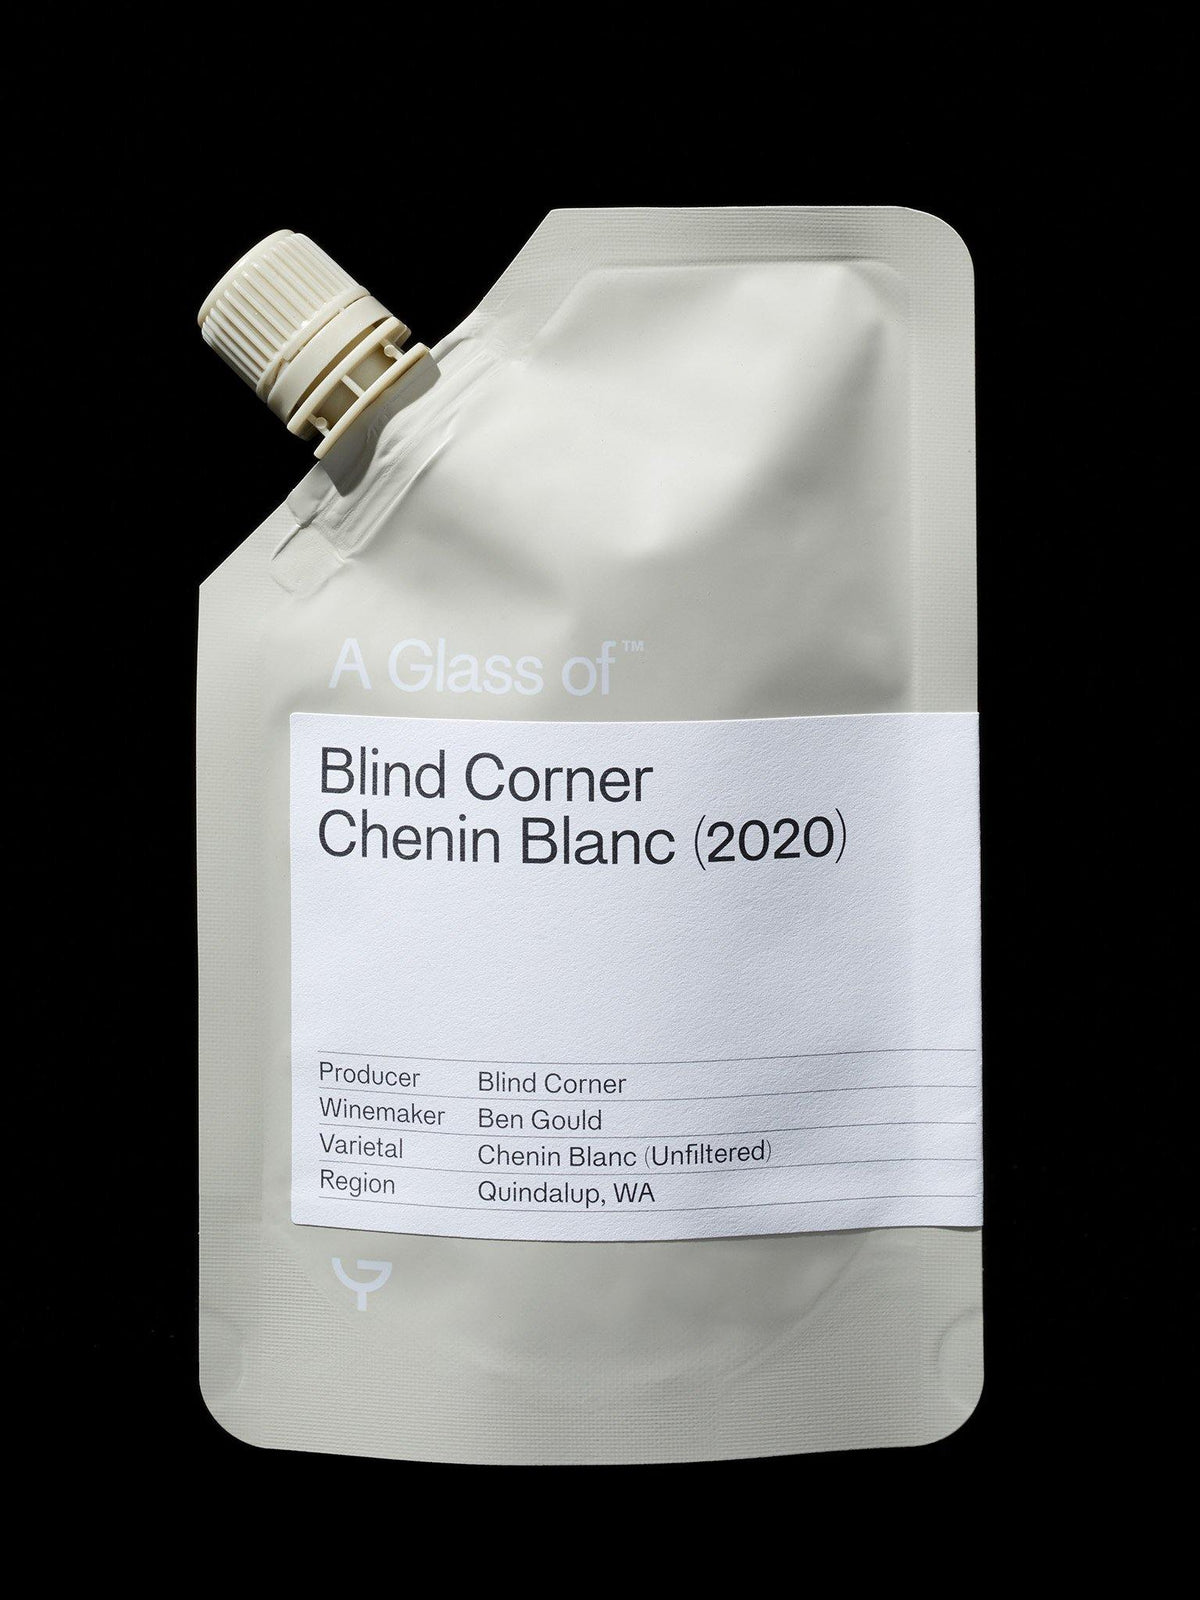 2020 Blind Corner Chenin Blanc -  A Glass of™